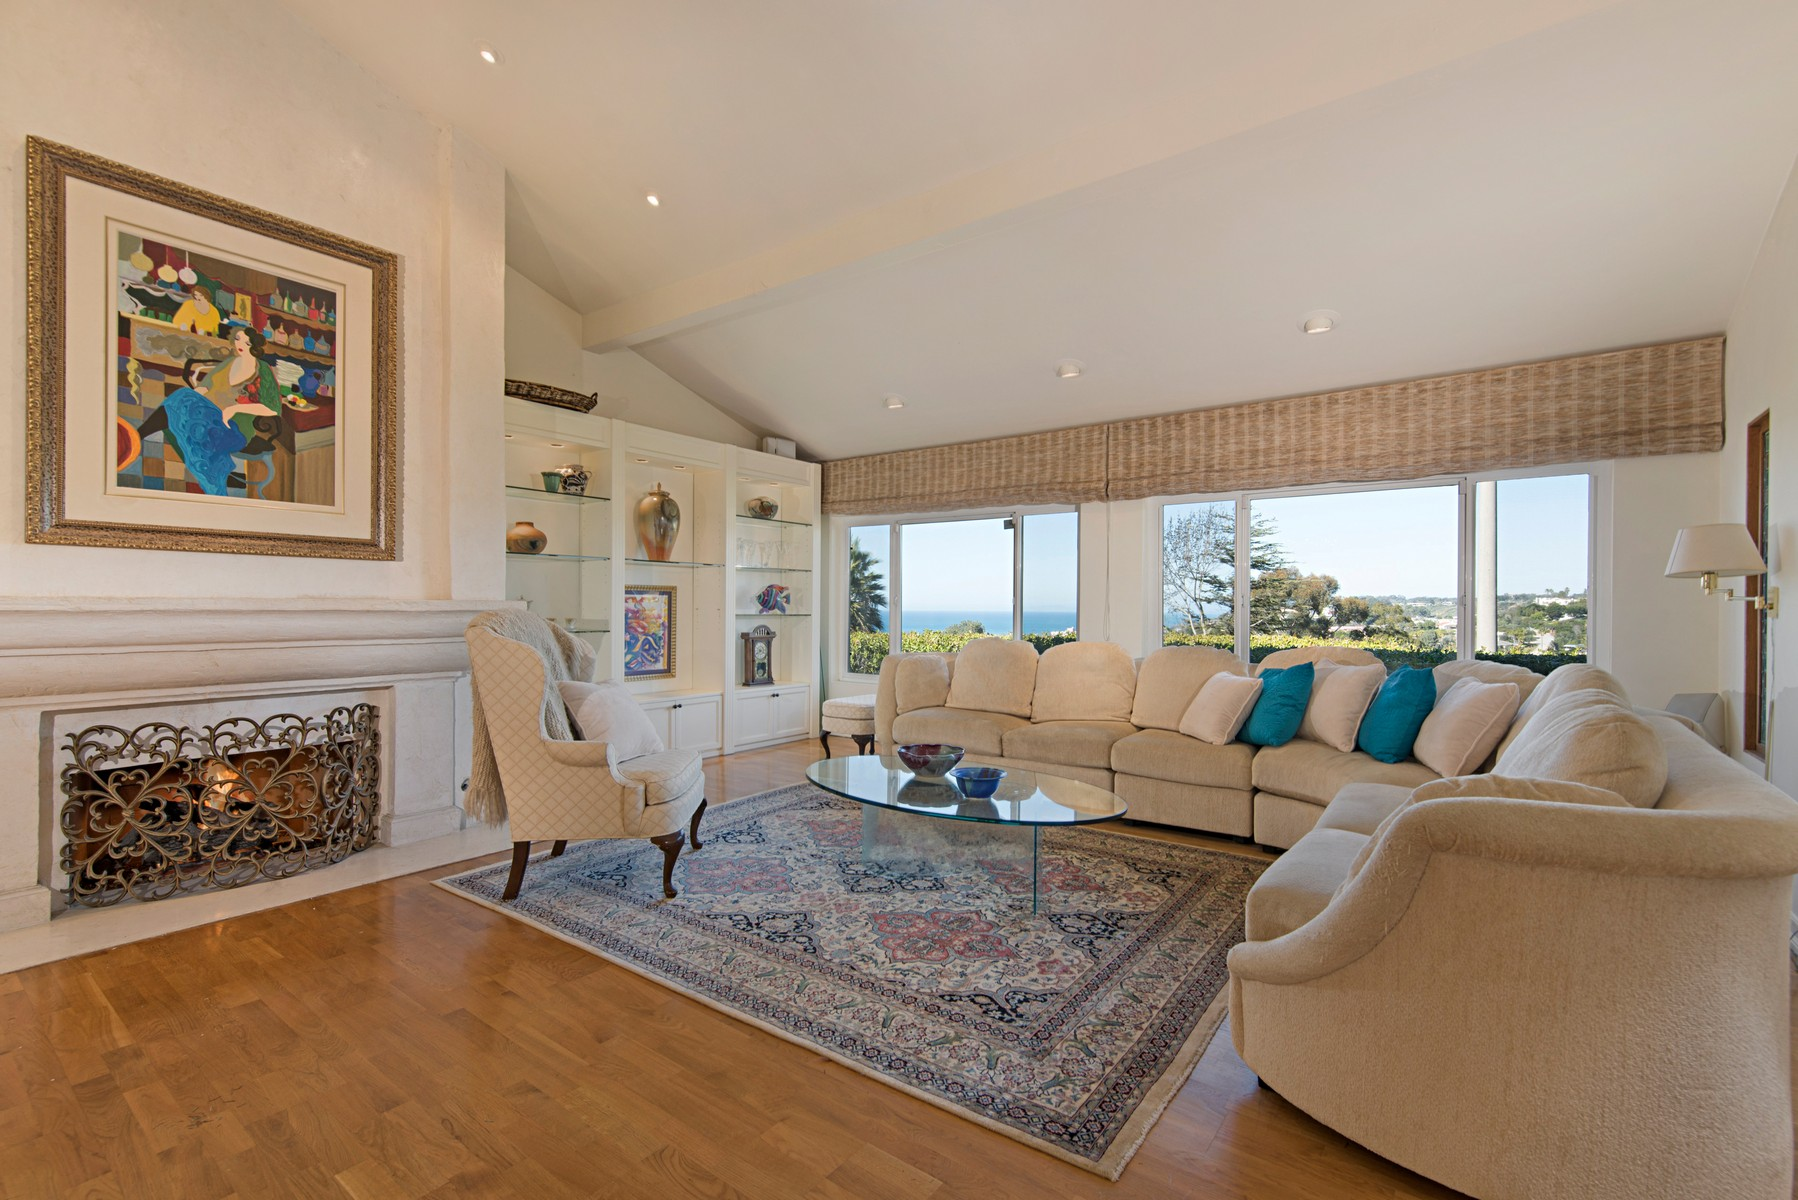 Additional photo for property listing at 7833 Via Capri  La Jolla, Californie 92037 États-Unis